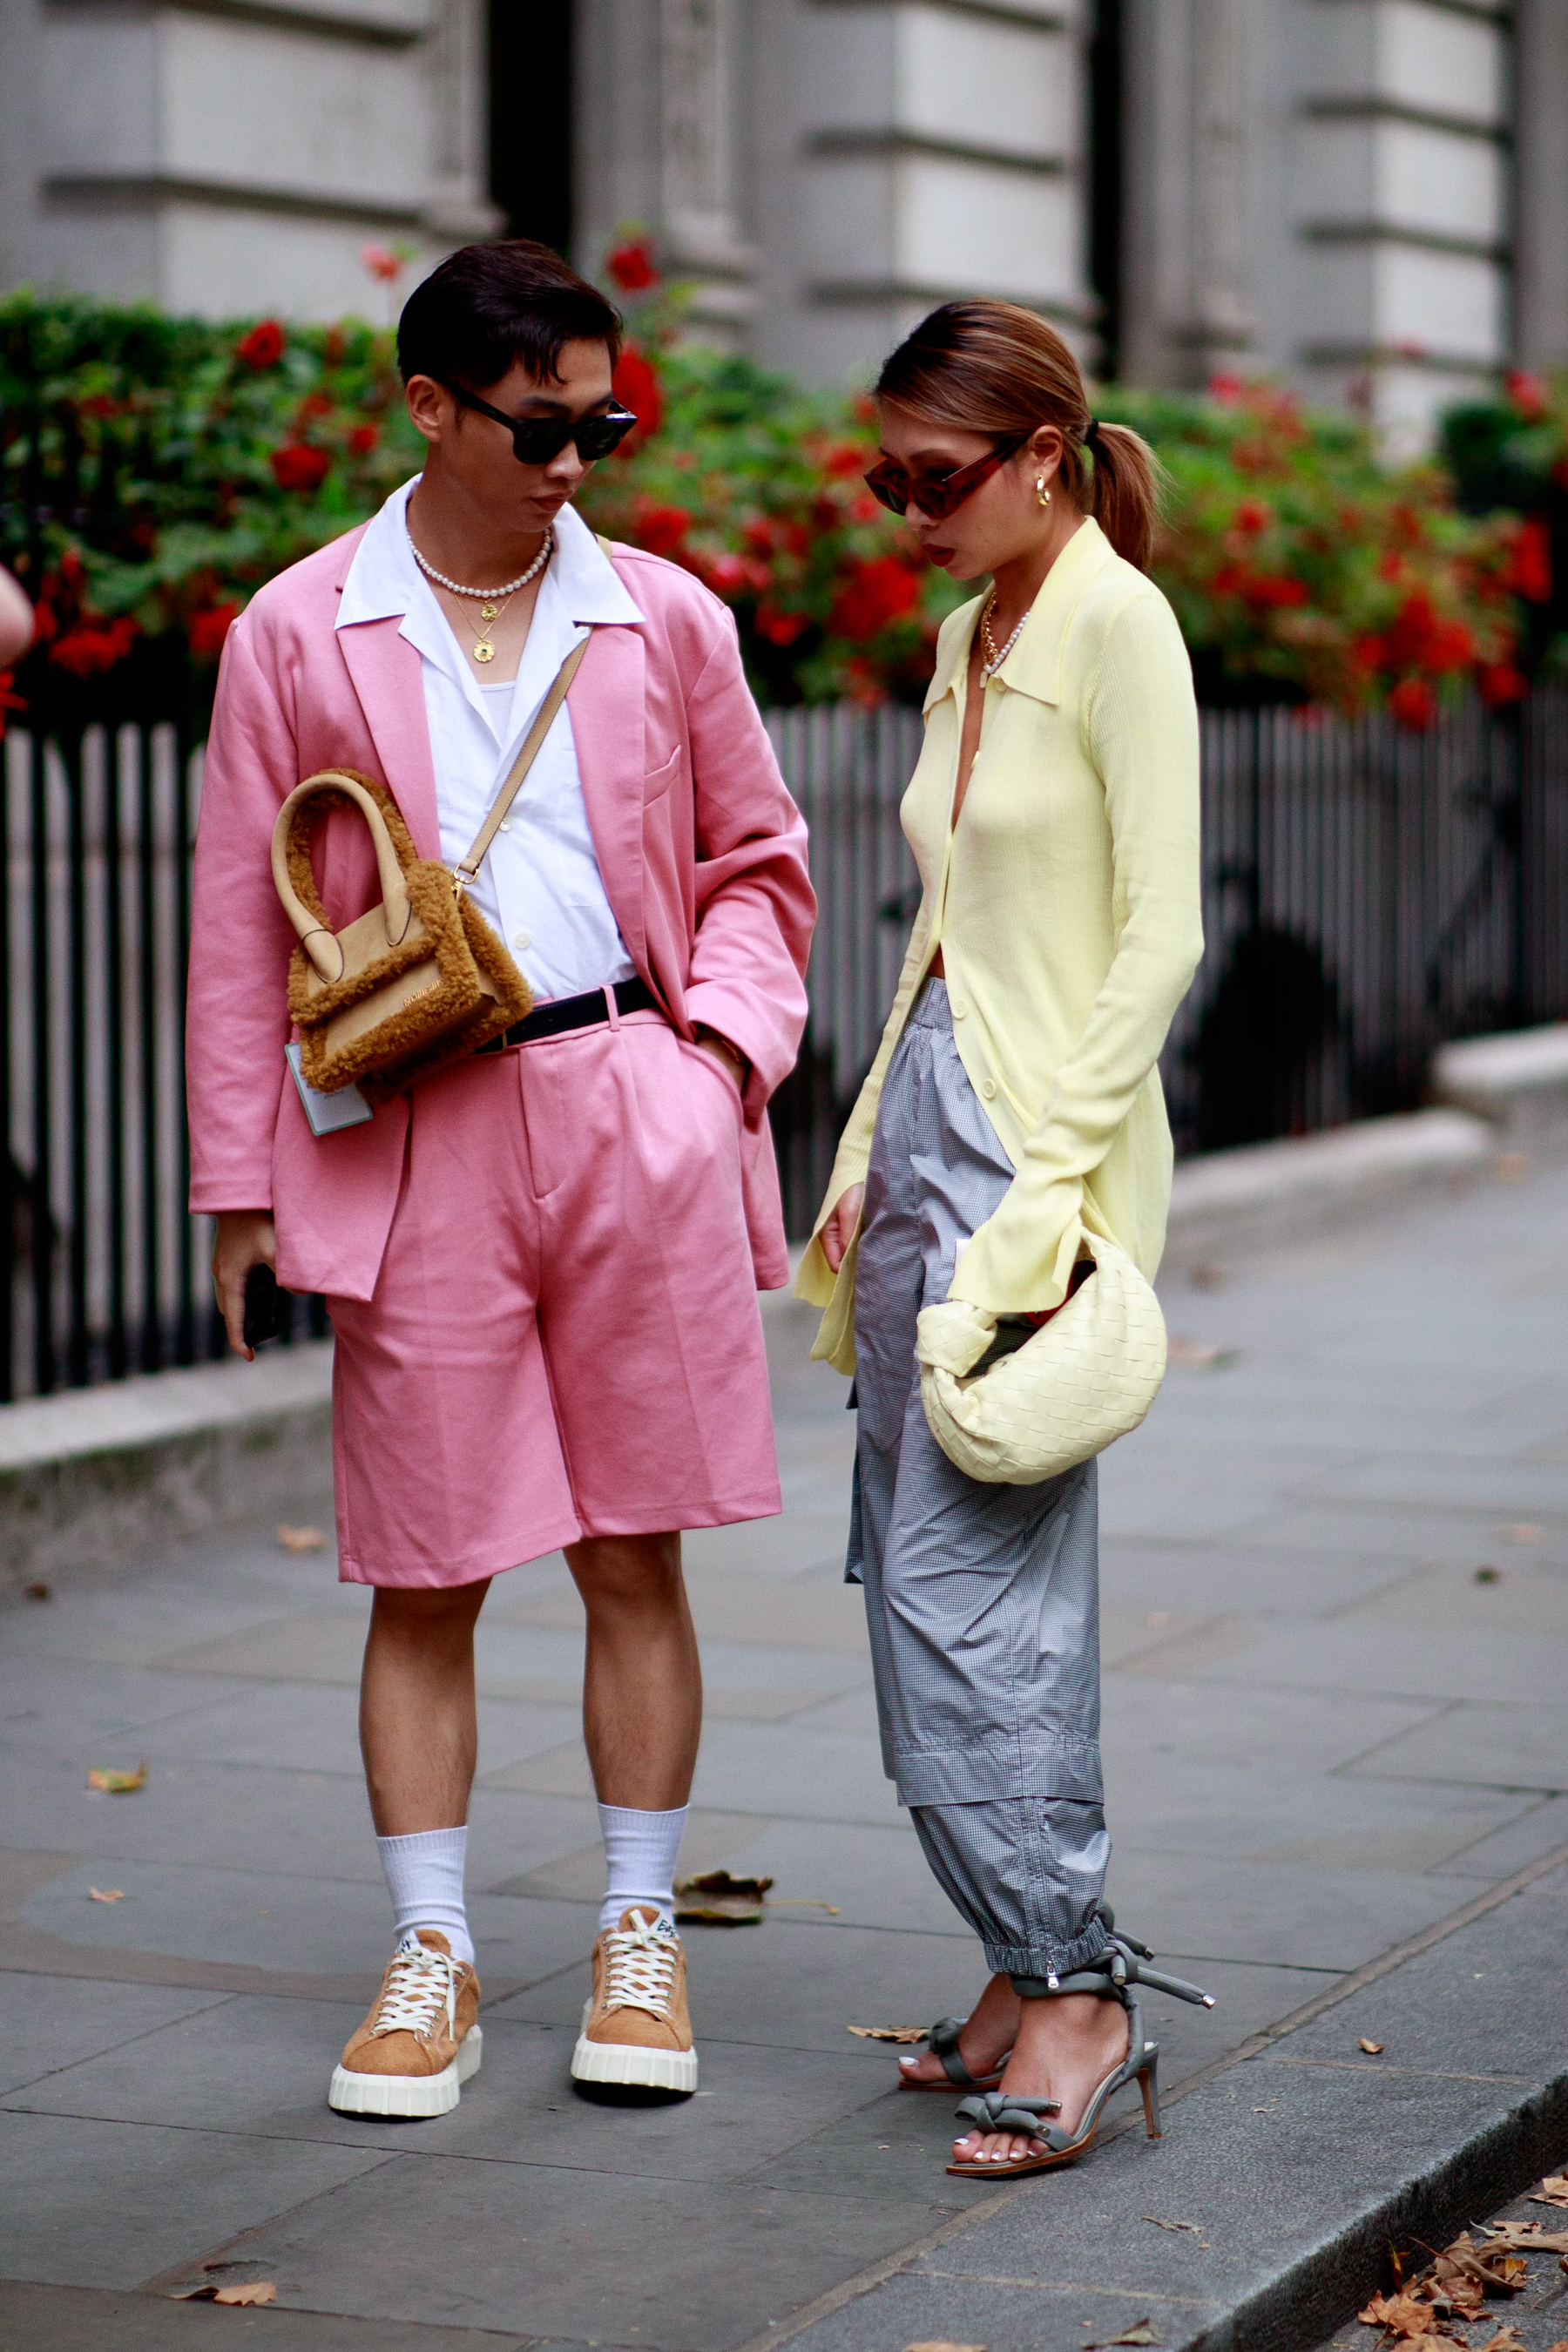 London Street Style Spring 2022 Day 1